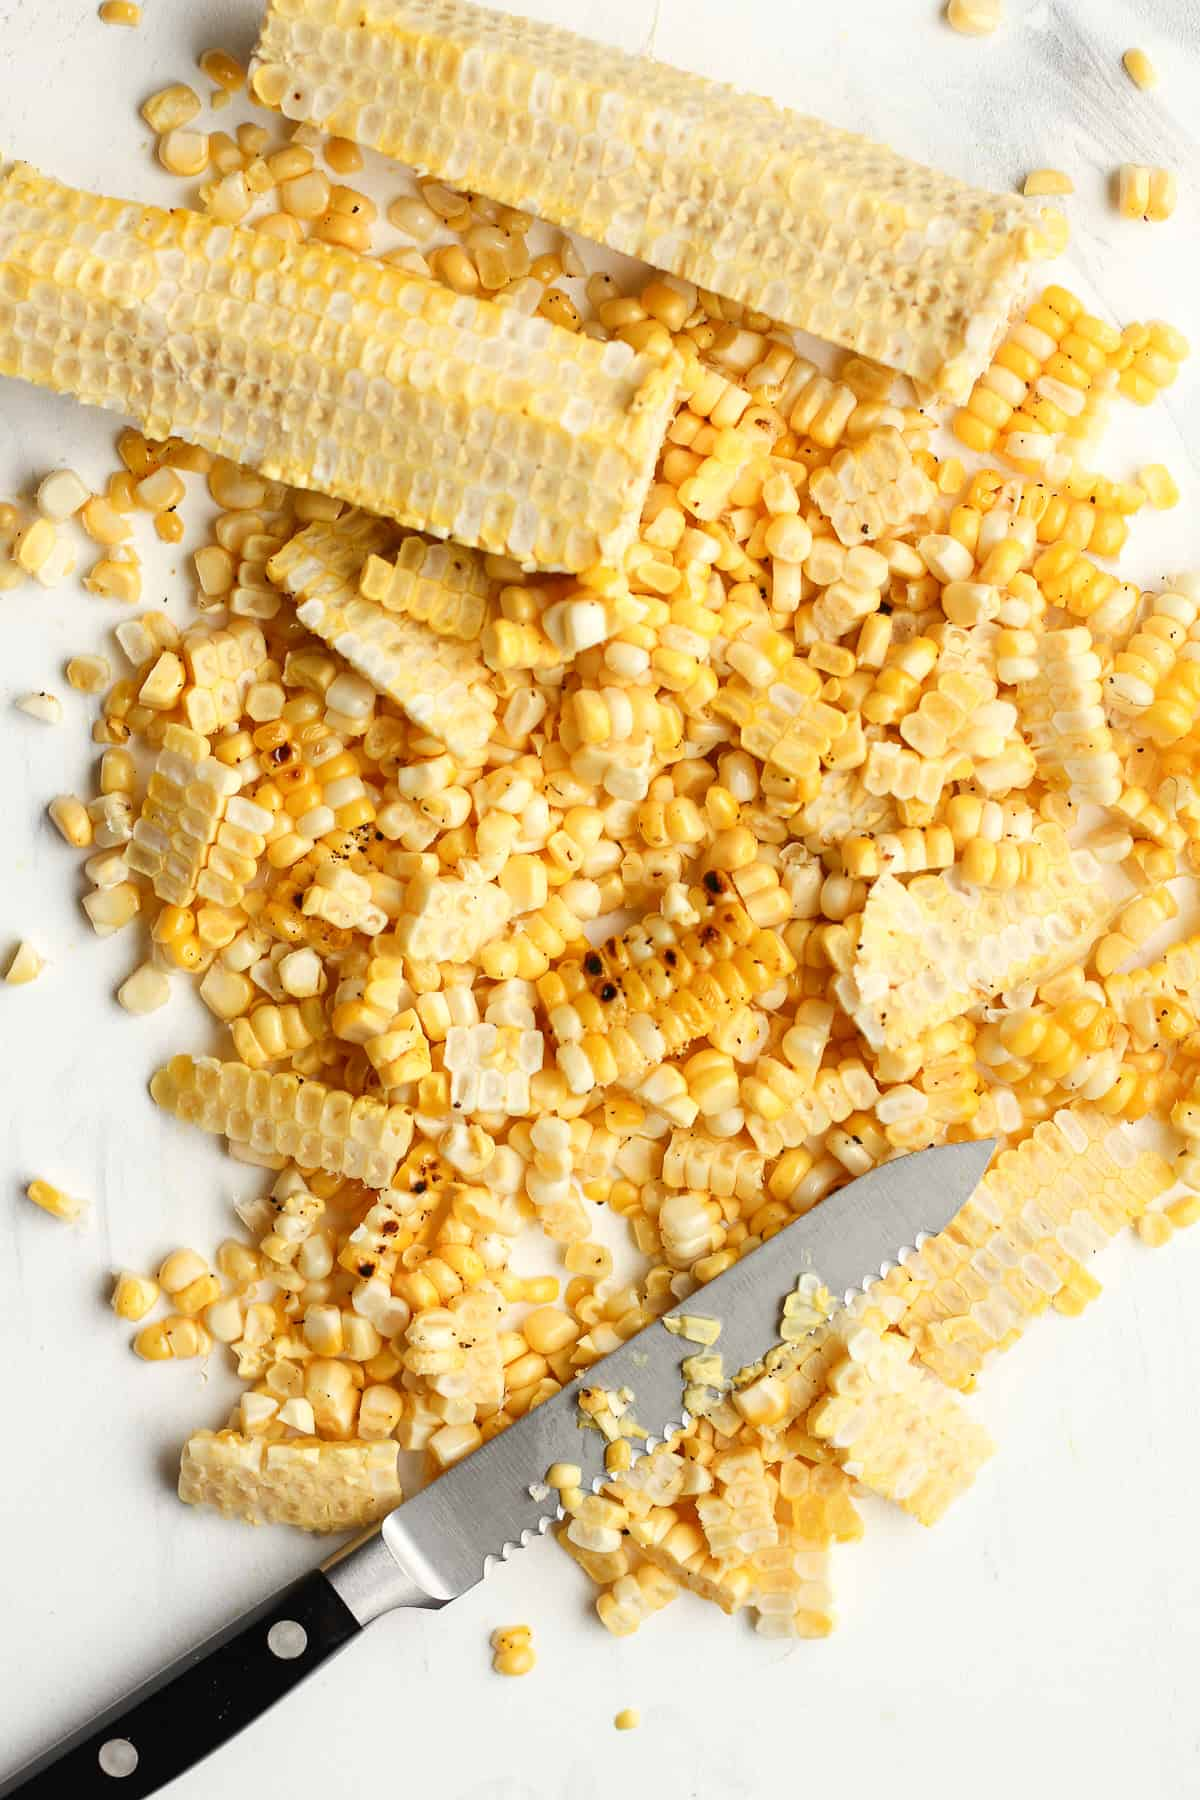 A board with the removed corn kernels next to cobs.